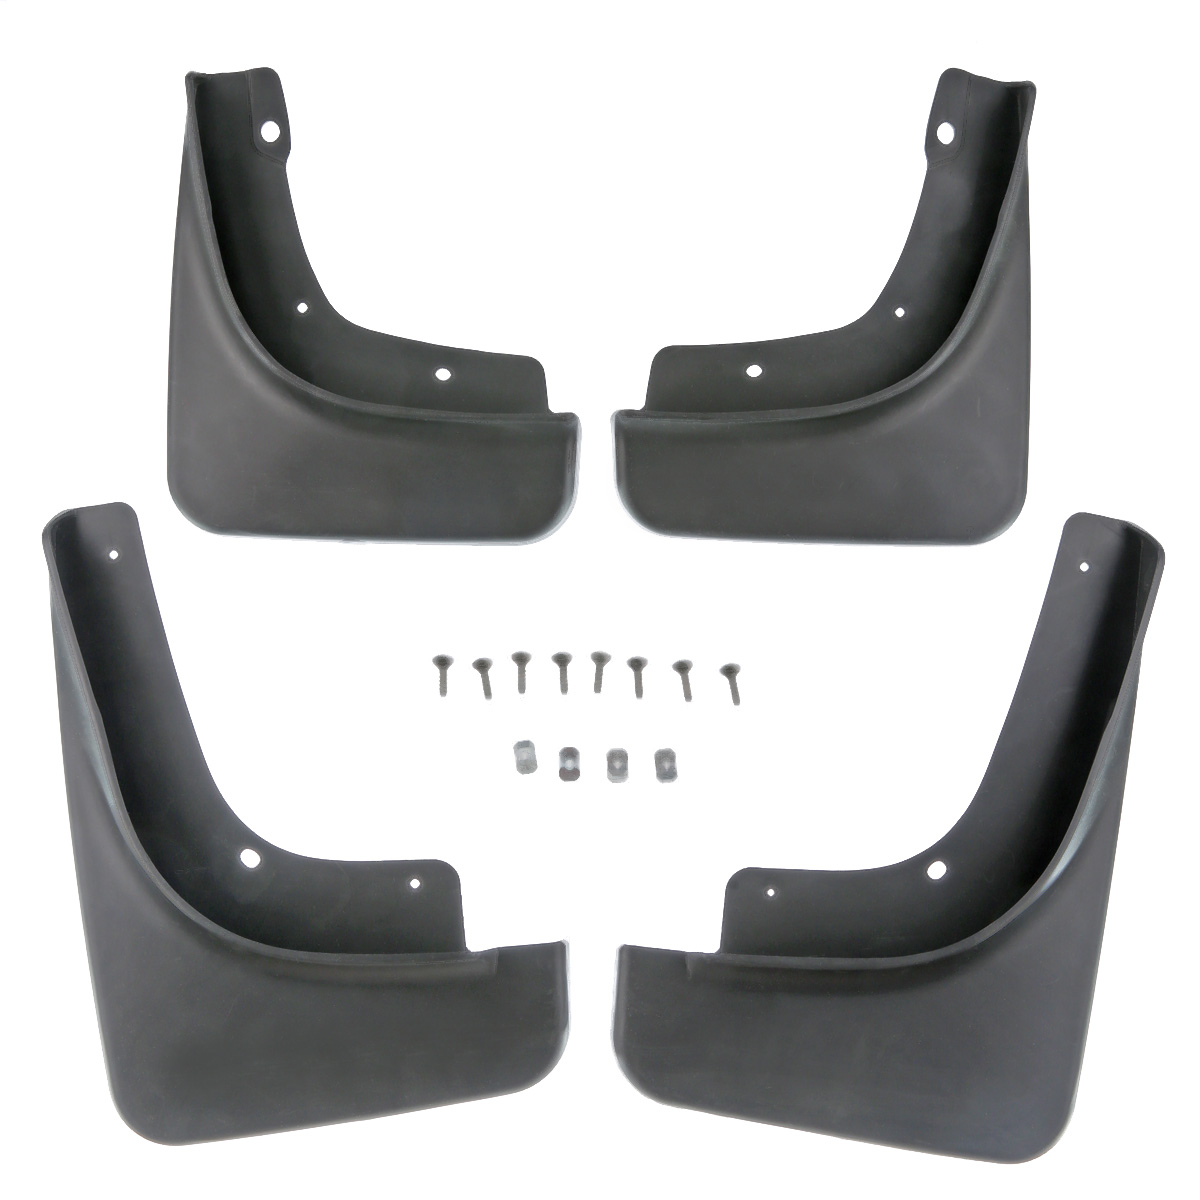 Set of 4 Mud Flaps Kit Fit For Jeep Compass 2017 2018 Splash Guards 82214642AE